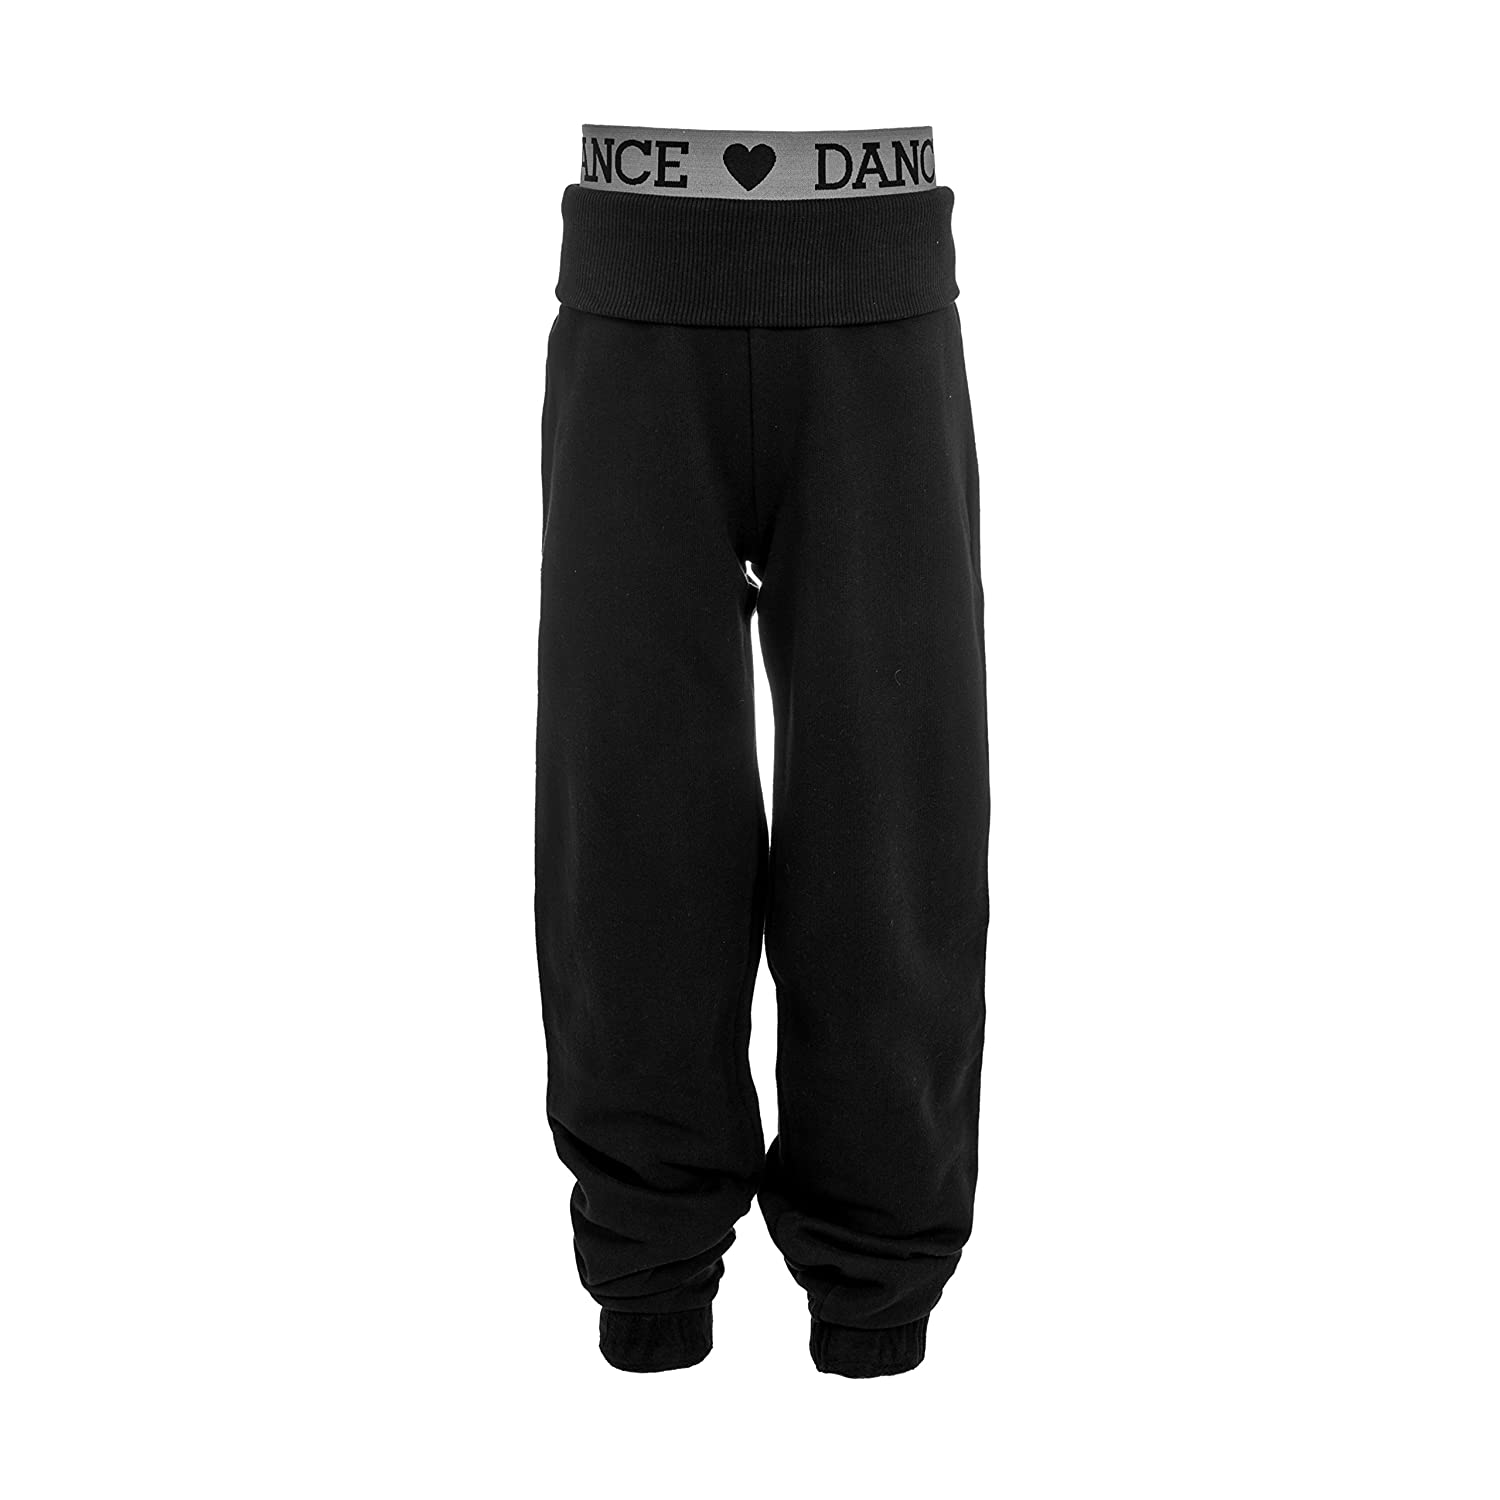 Brody & Co. Childrens Dance Joggers Girls Tracksuit Pants Jogging Bottoms Roll up Cuff Gym Games